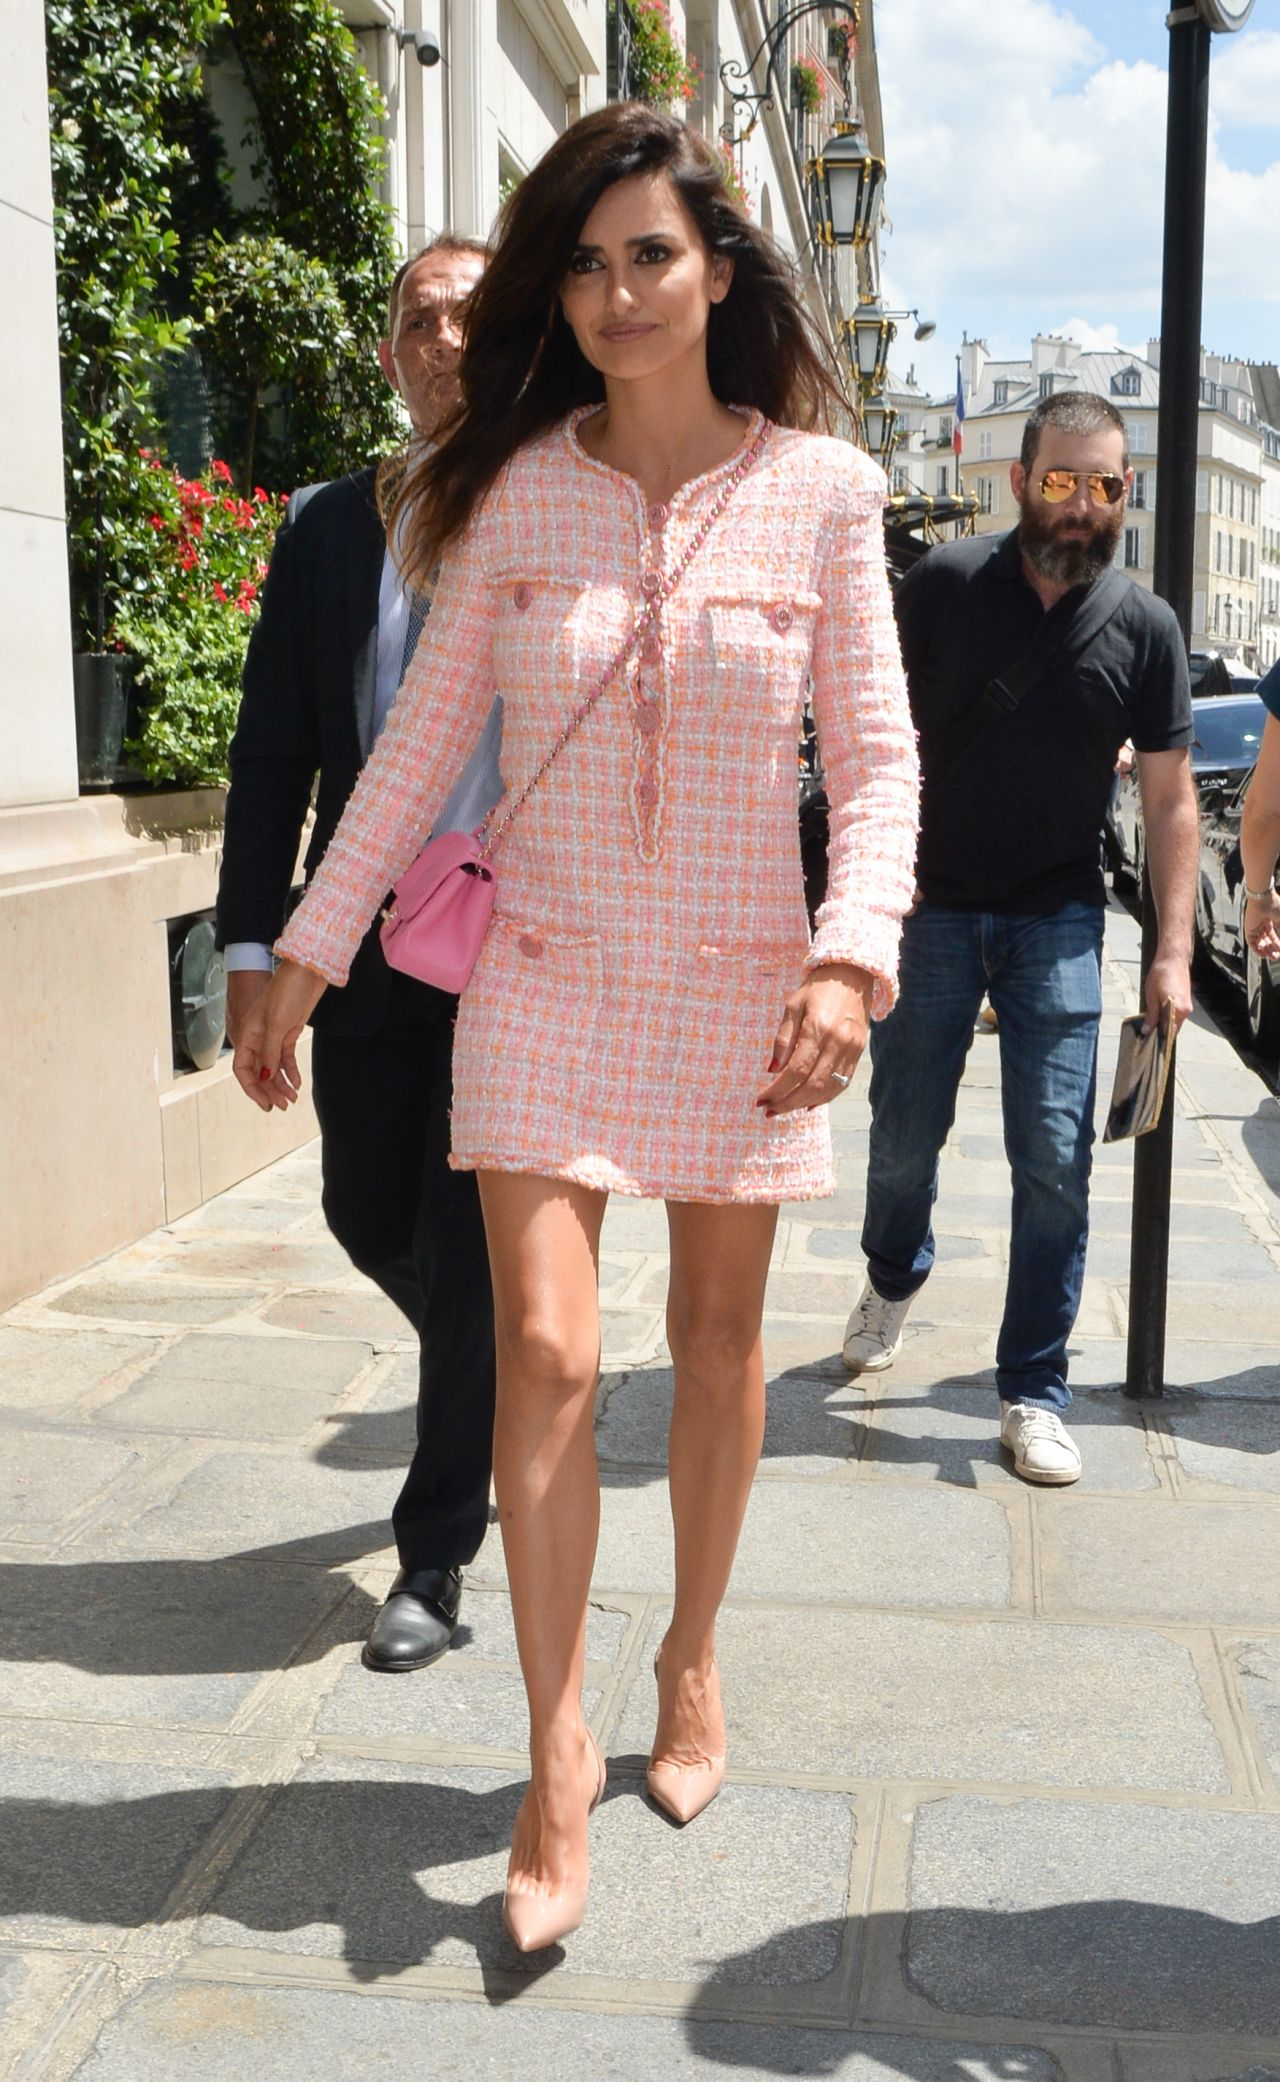 https://celebmafia.com/wp-content/uploads/2018/07/penelope-cruz-at-chanel-show-pfw-in-paris-07-03-2018-2.jpg